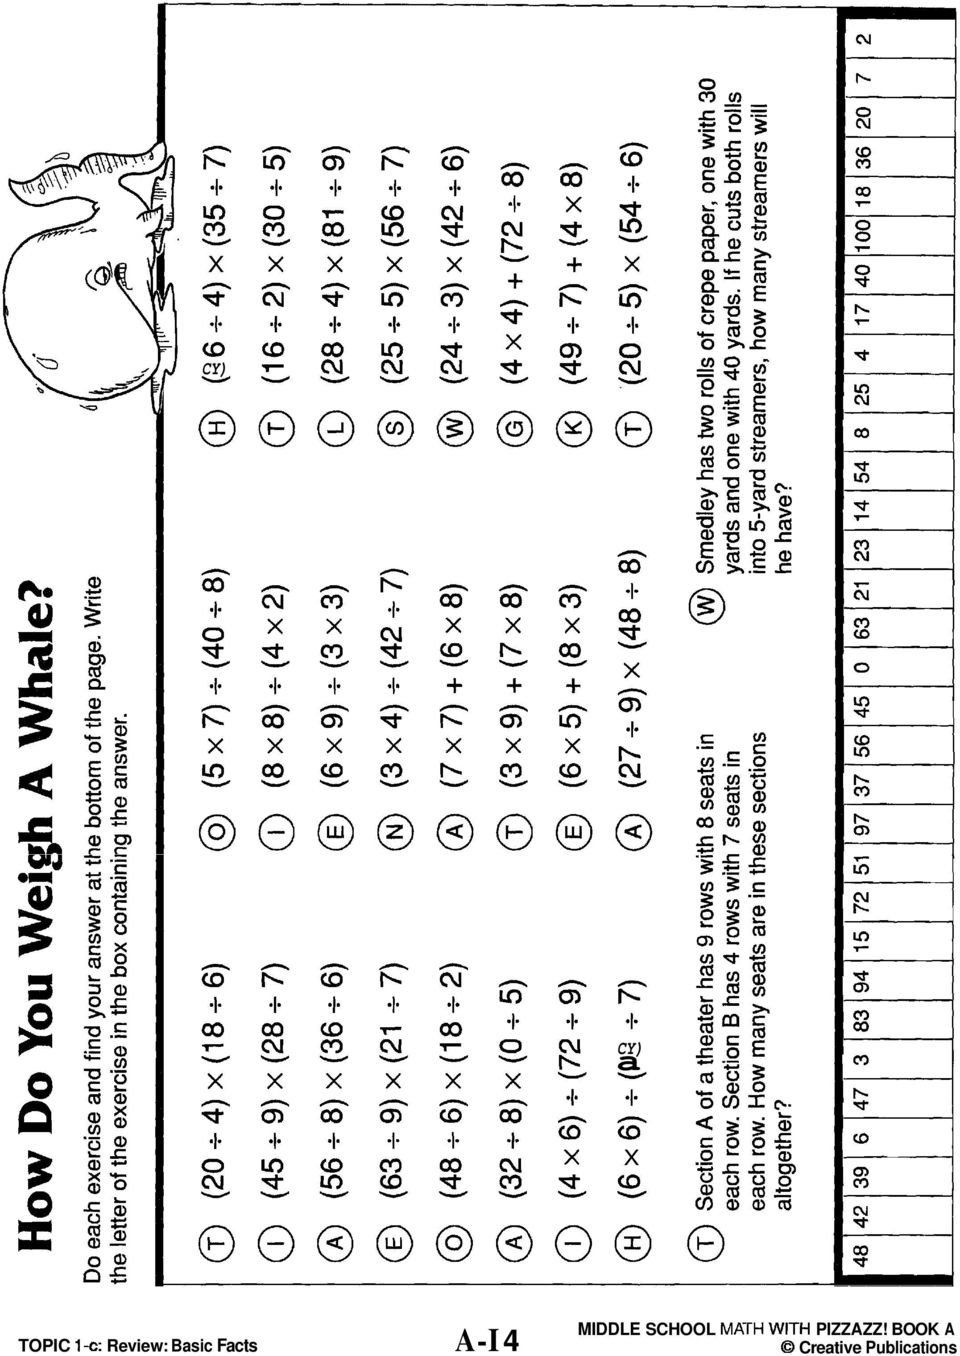 Pre Algebra Worksheet Answers Ab8 Middle School Math Pizzazz Worksheet Answers Moving Algebra Worksheets Letter Worksheets For Preschool Pre Algebra